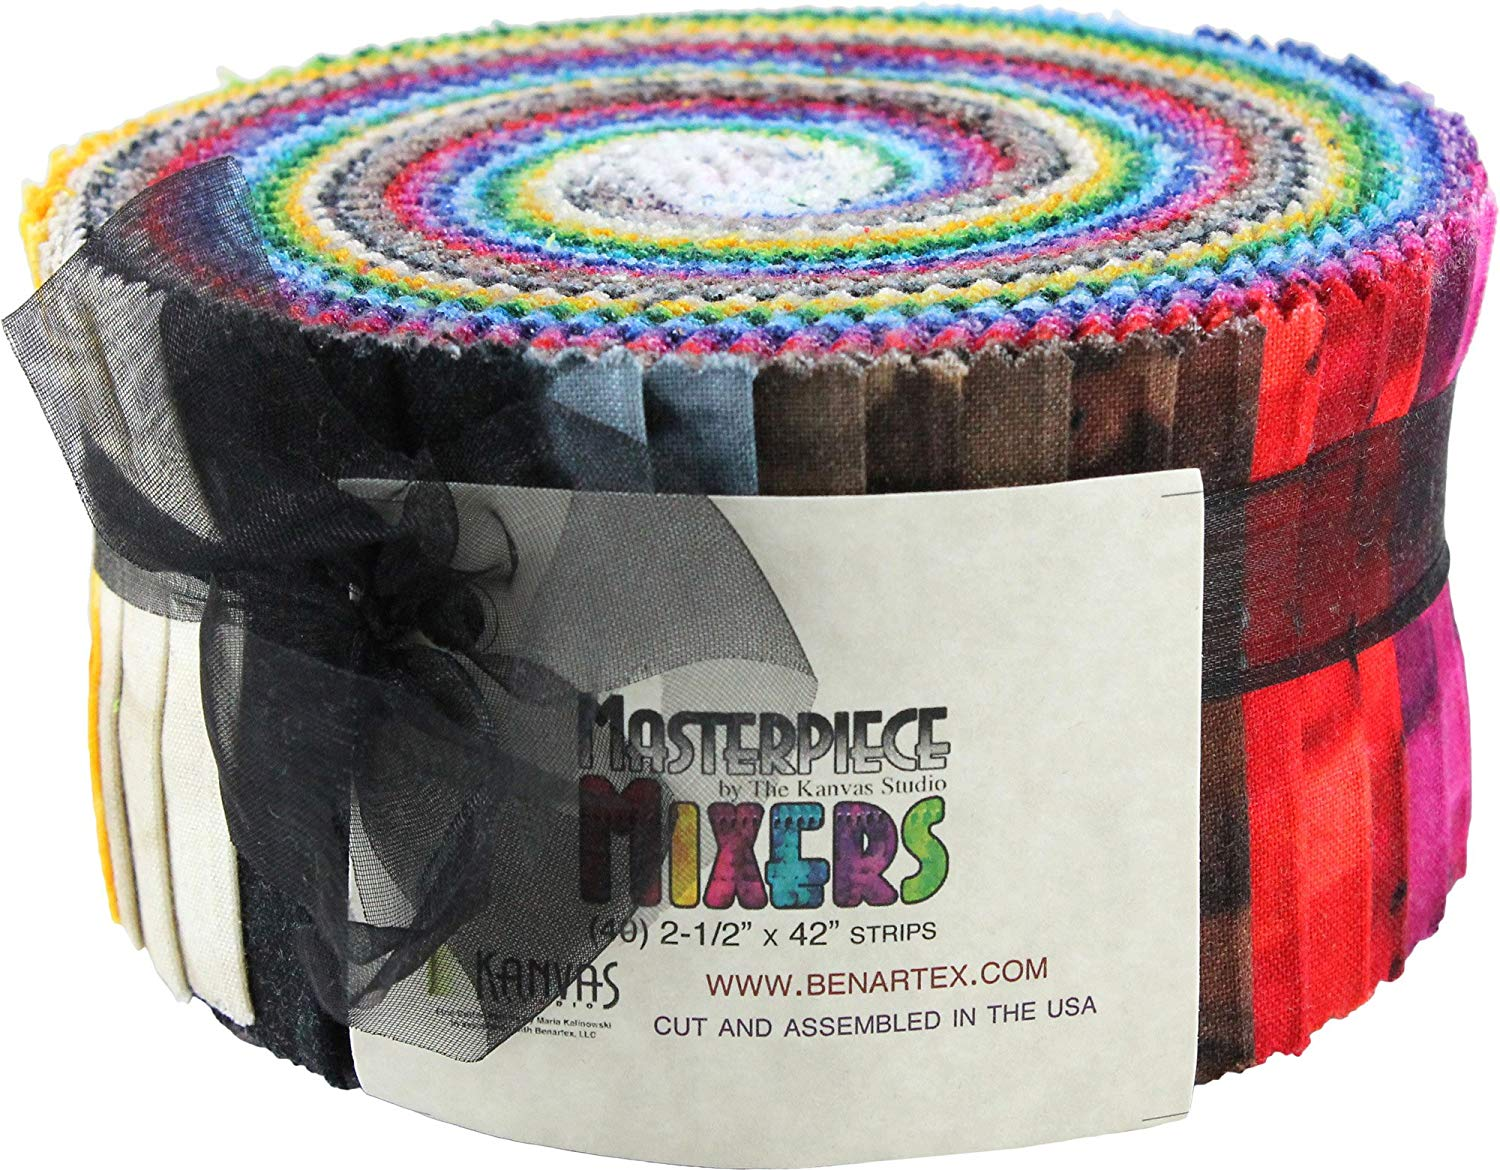 Benartex MASTERPIECE MIXERS Pinwheel 2.5-inch Quilting Strips Jelly Roll Fabric